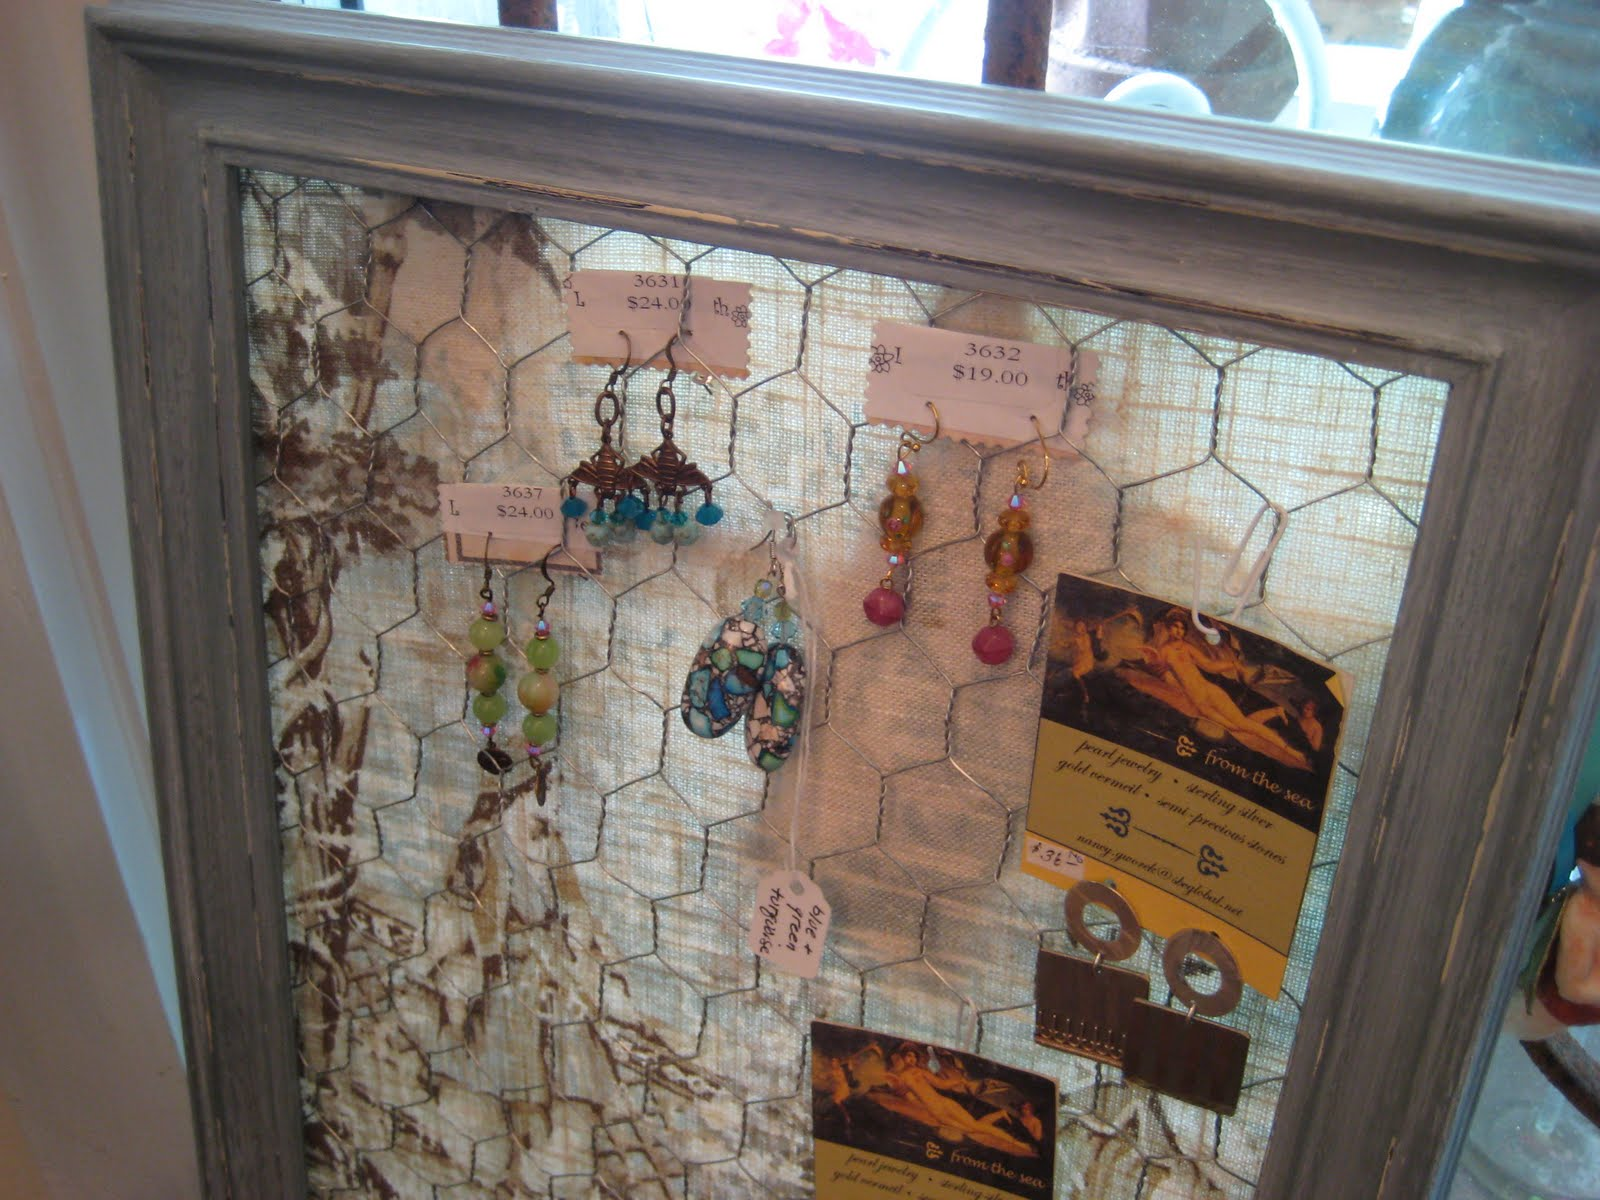 C Dianne Zweig Kitsch N Stuff Using An Old Frame And Chicken Wire To Hang Vintage Jewelry